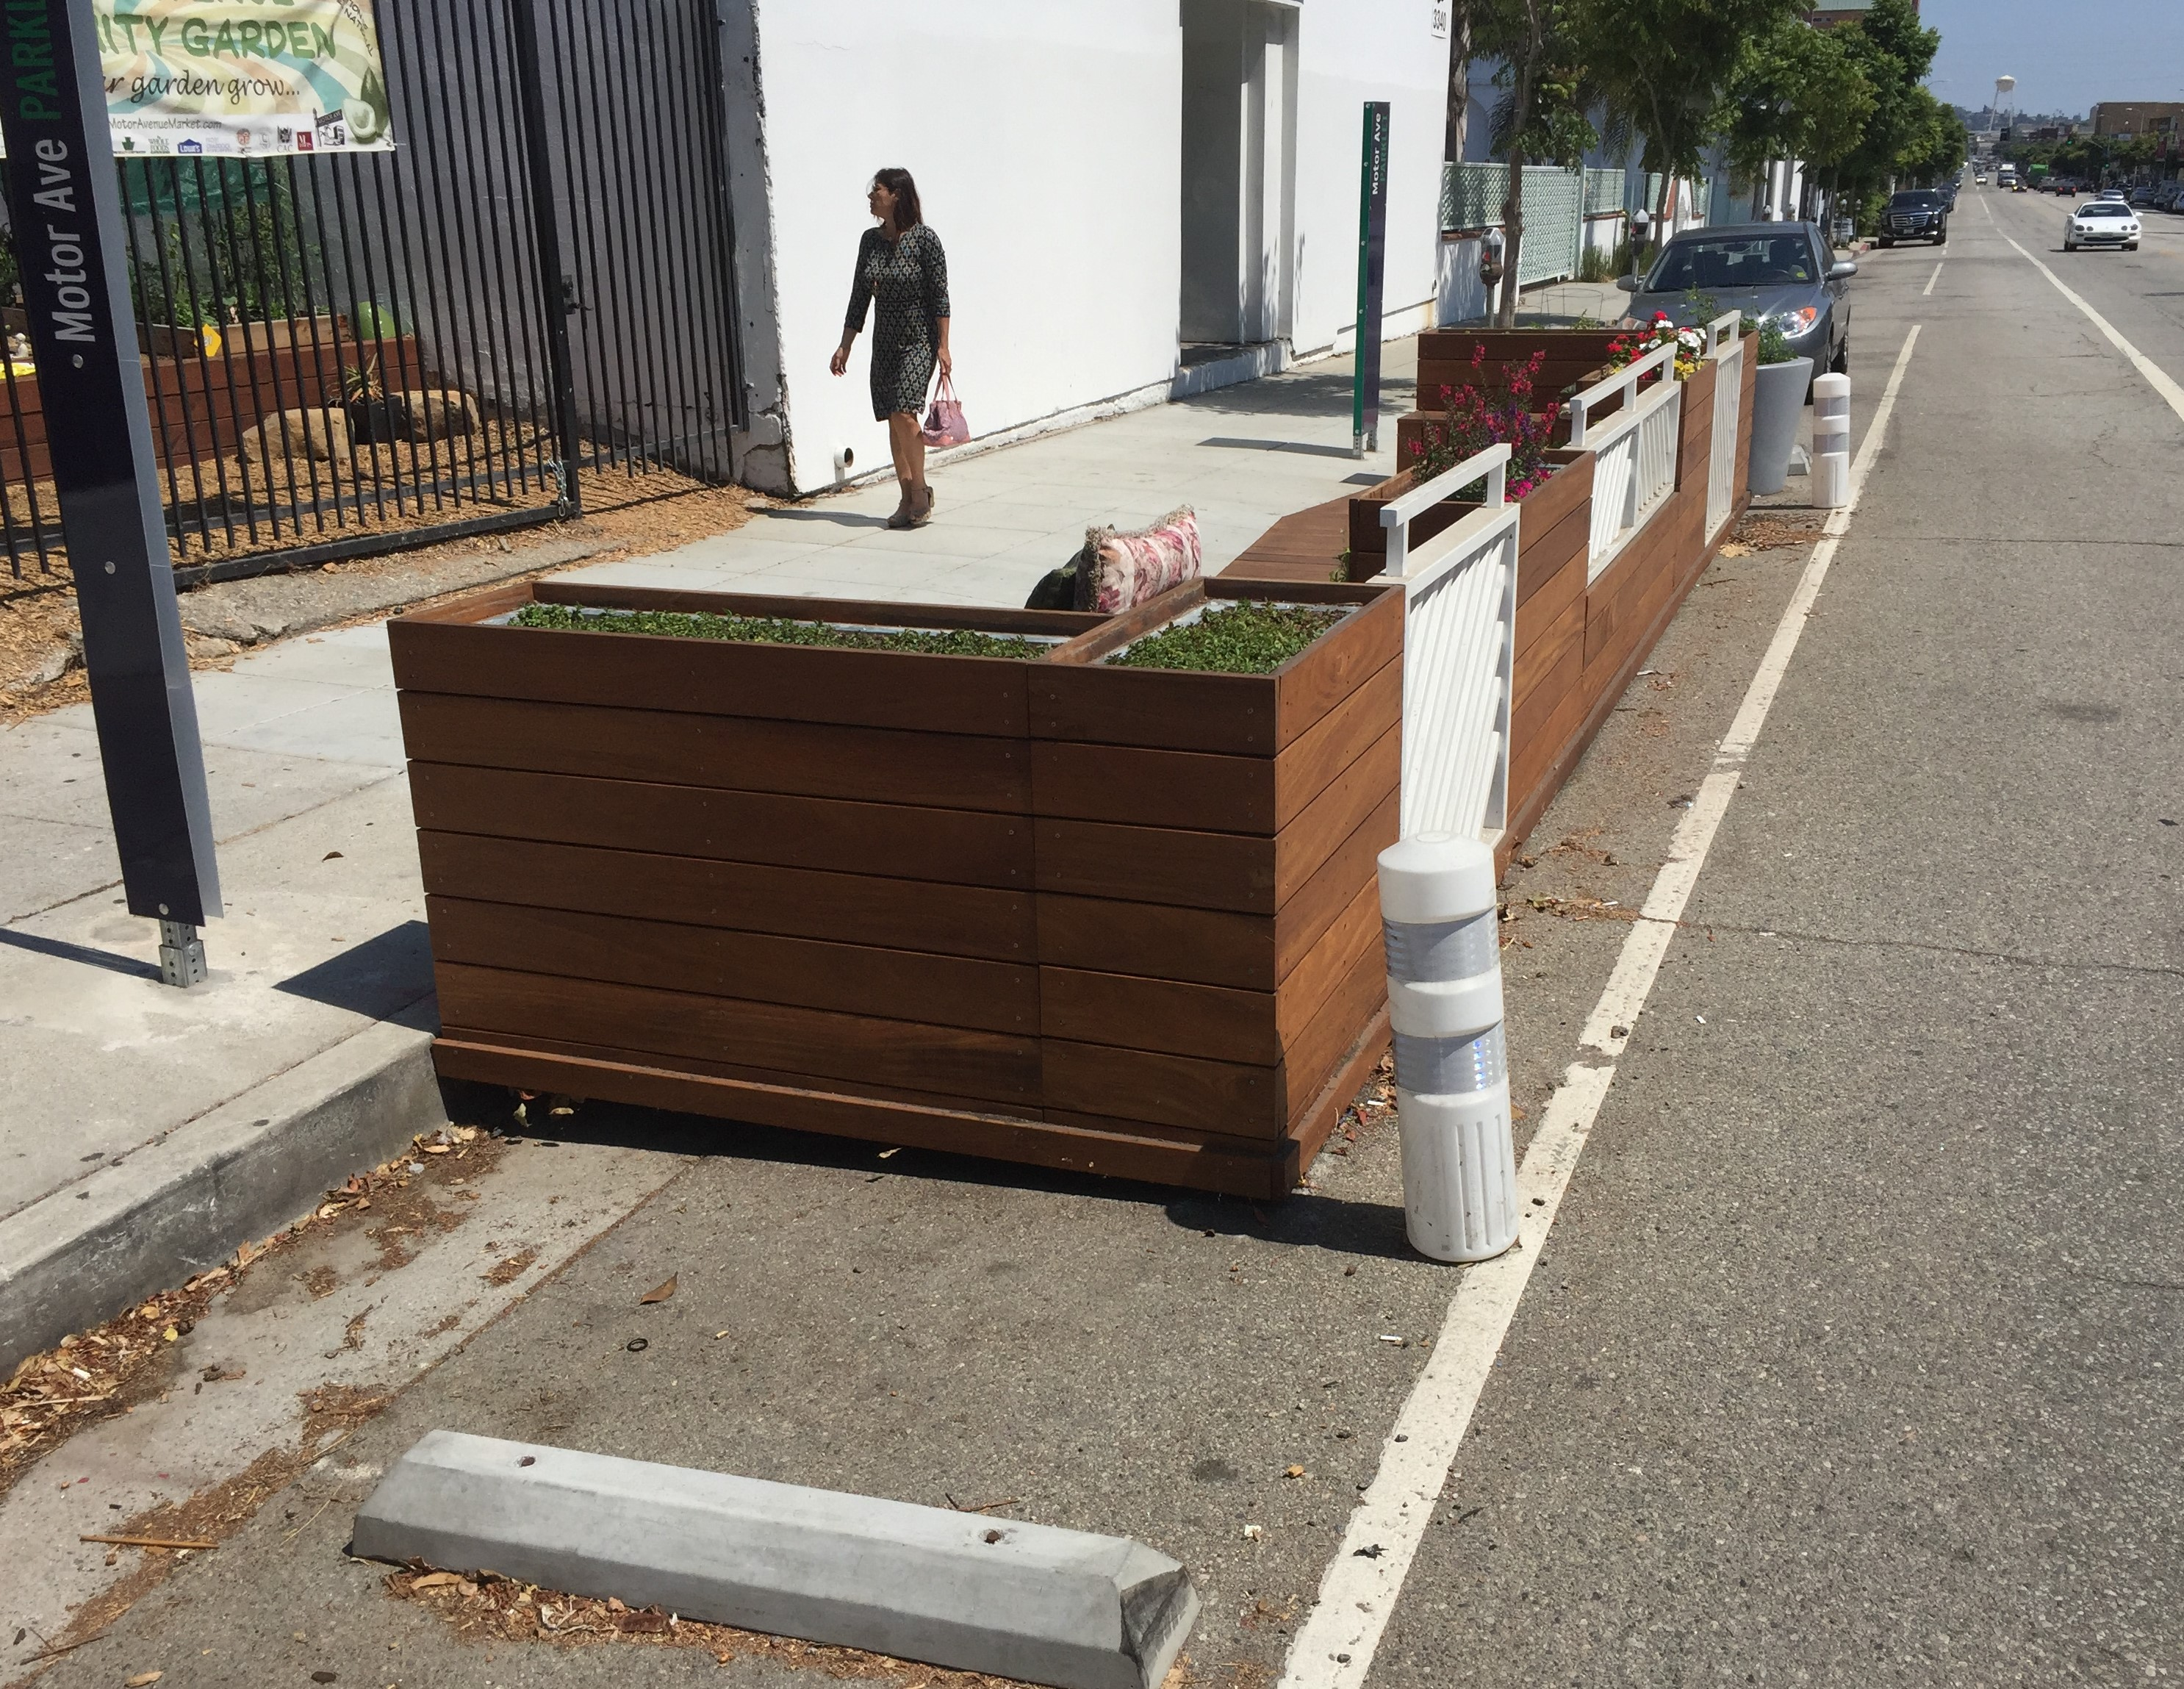 The southern Parklet on Motor, located in front of the Motor Avenue Community Garden